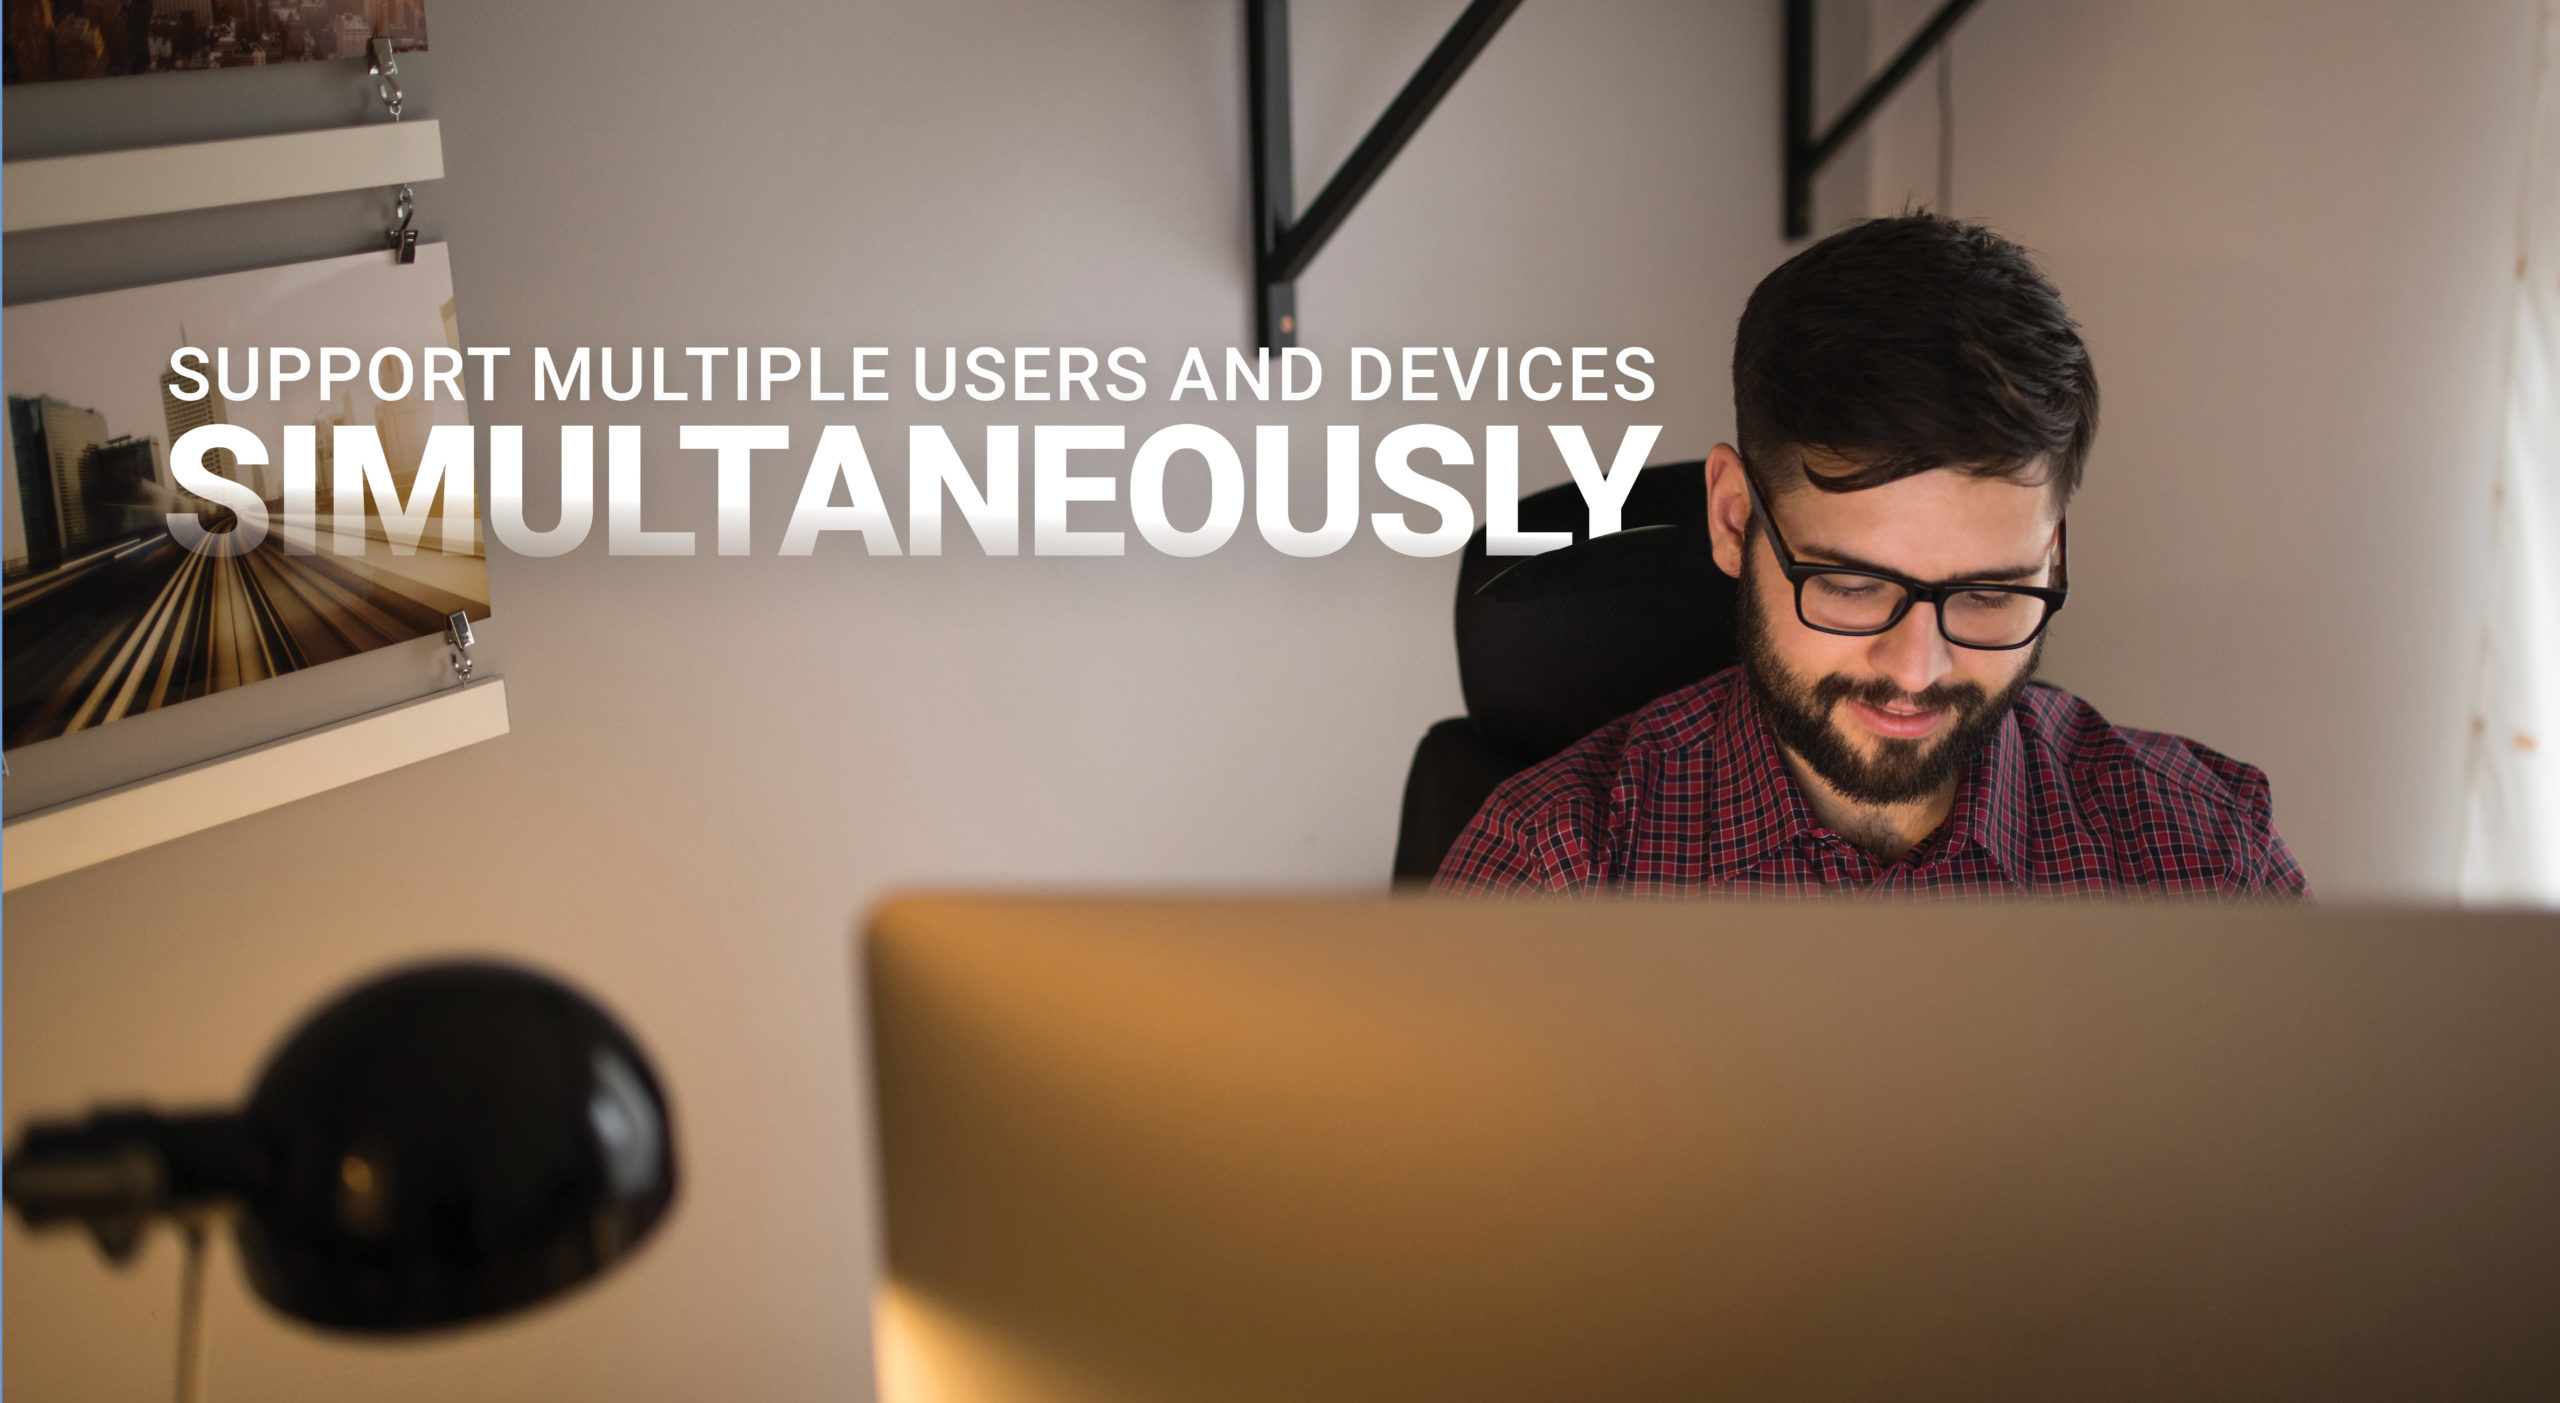 Support multiple users and devices simultaneously